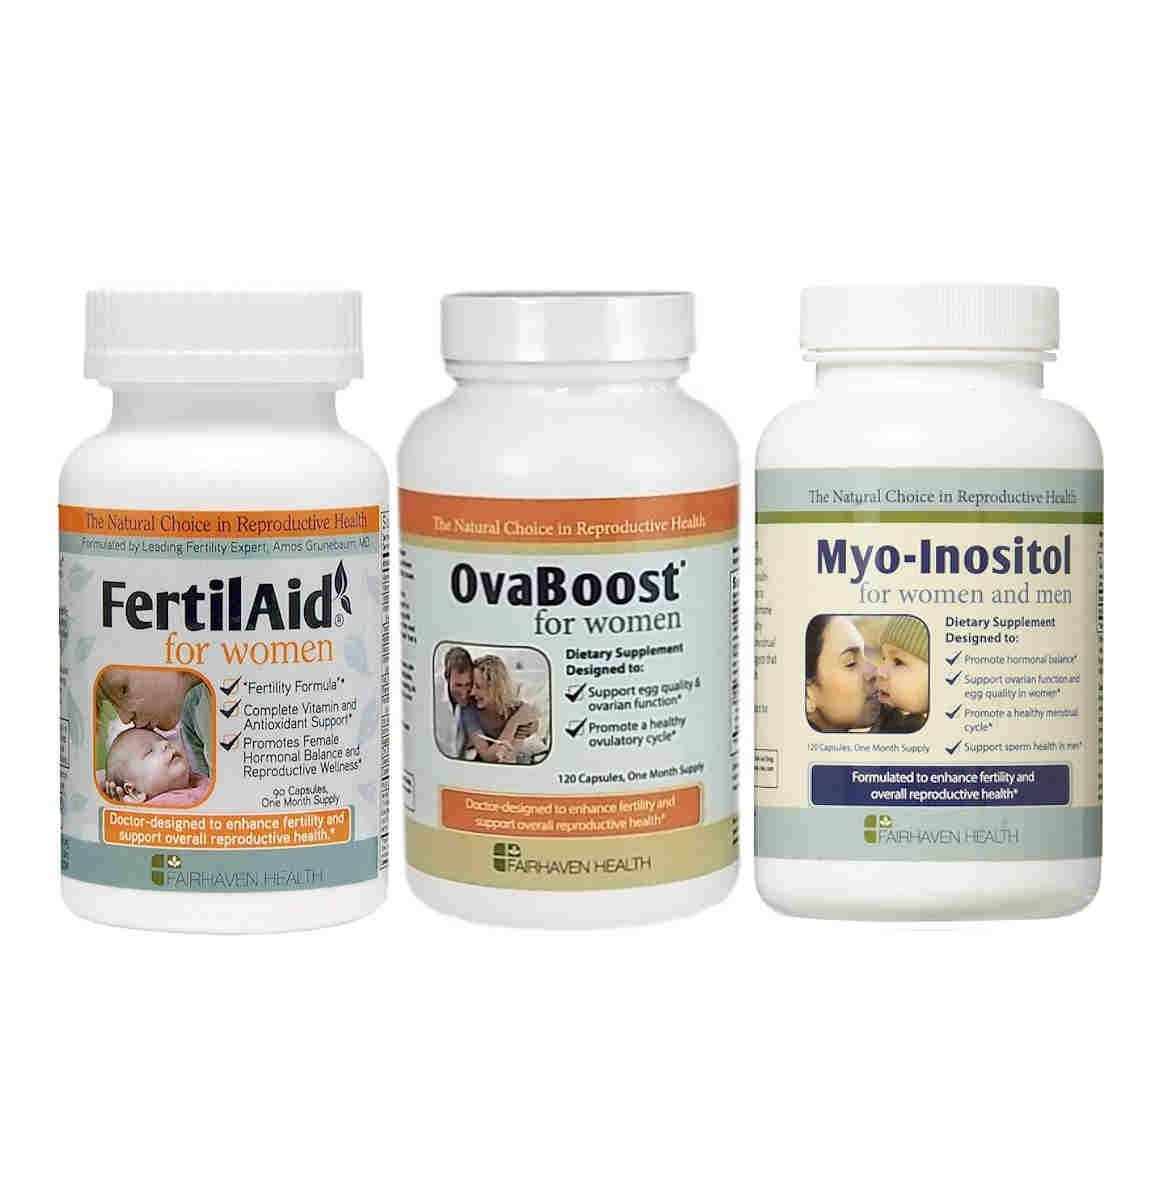 Fertilaid for Women, OvaBoost, and  Myo-Inositol Fertility Supplements for Women Combo - 1 Month Supply - Provides Support for Women With PCOS